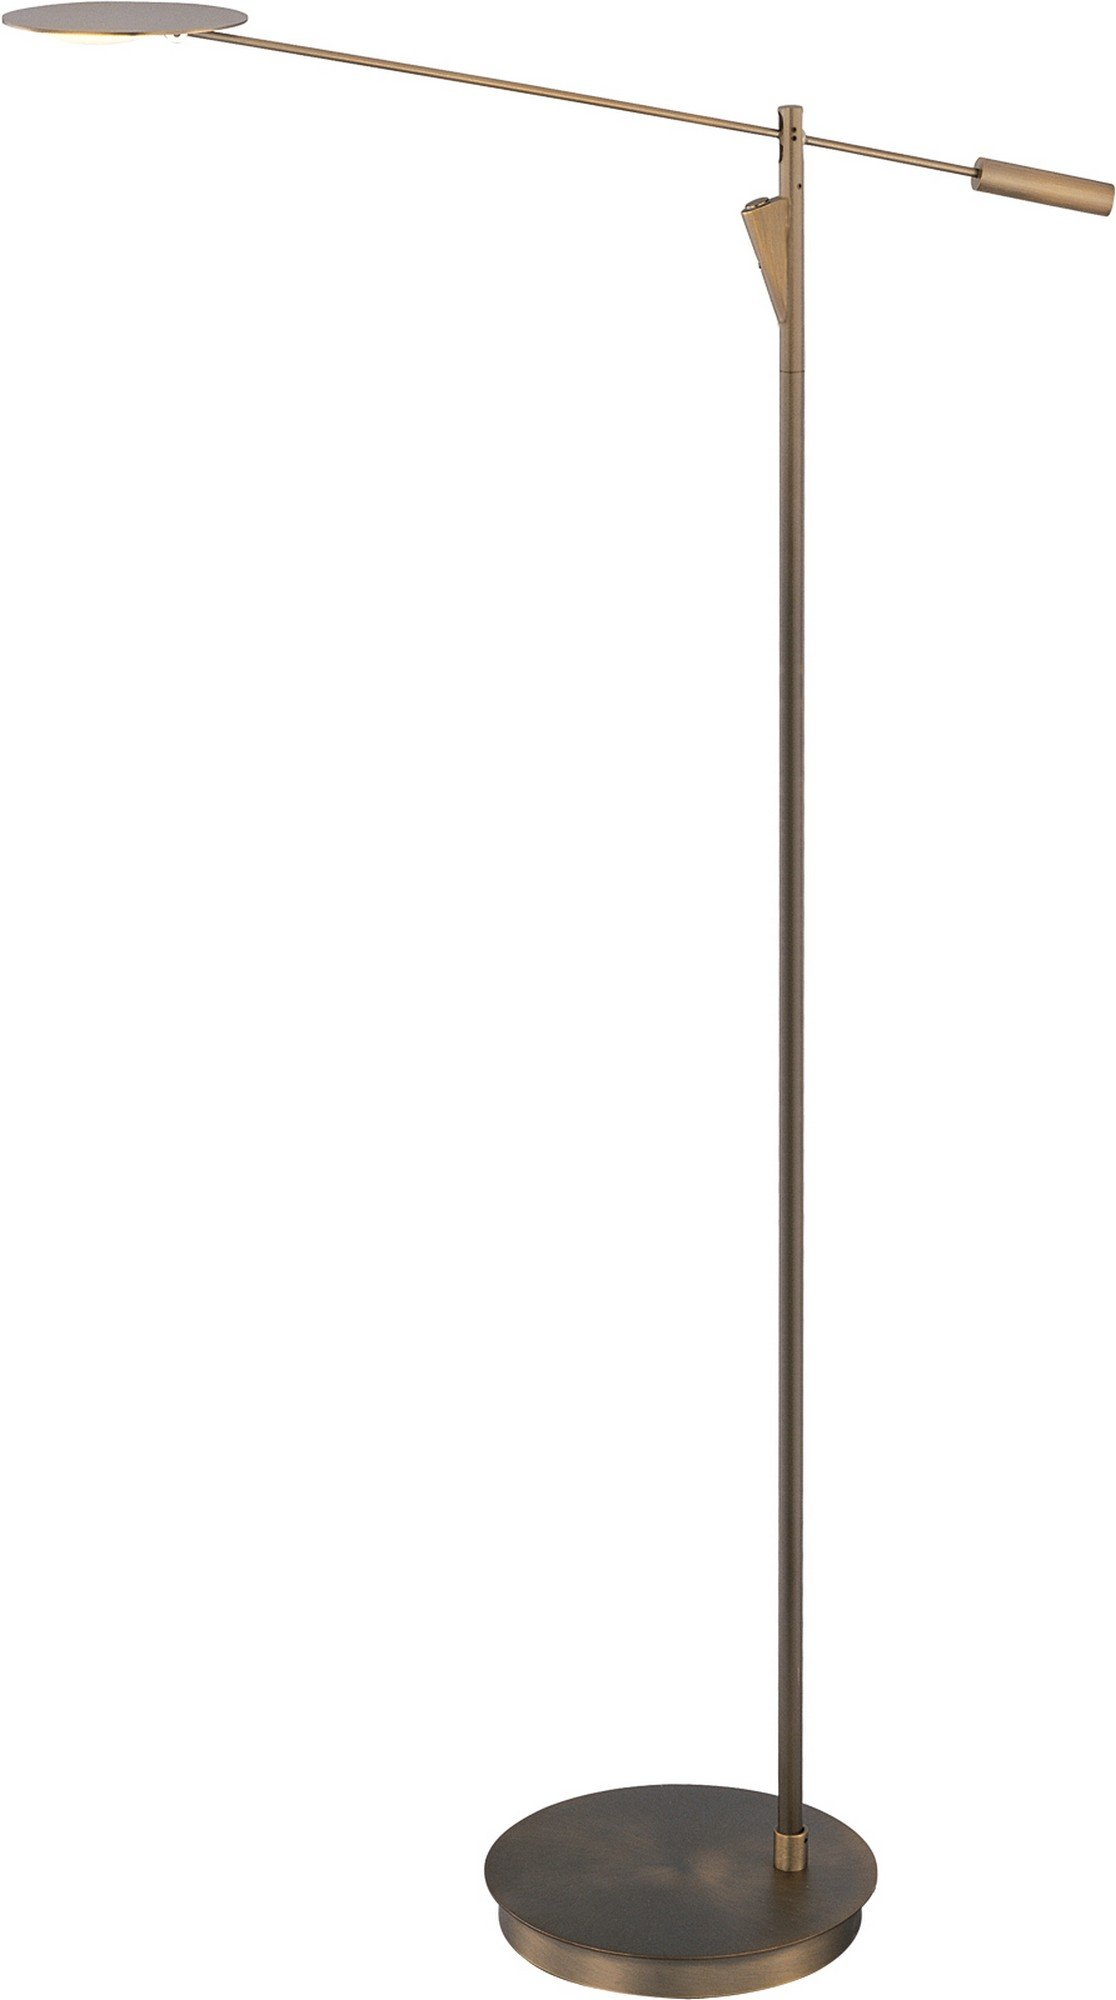 ET2 E41009-BZ Eco-Task LED Floor Lamp, Bronze Finish, Glass, PCB LED Bulb, 8W Max., Dry Safety Rated, 2700K Color Temp., Standard Dimmable, Shade Material, 1650 Rated Lumens